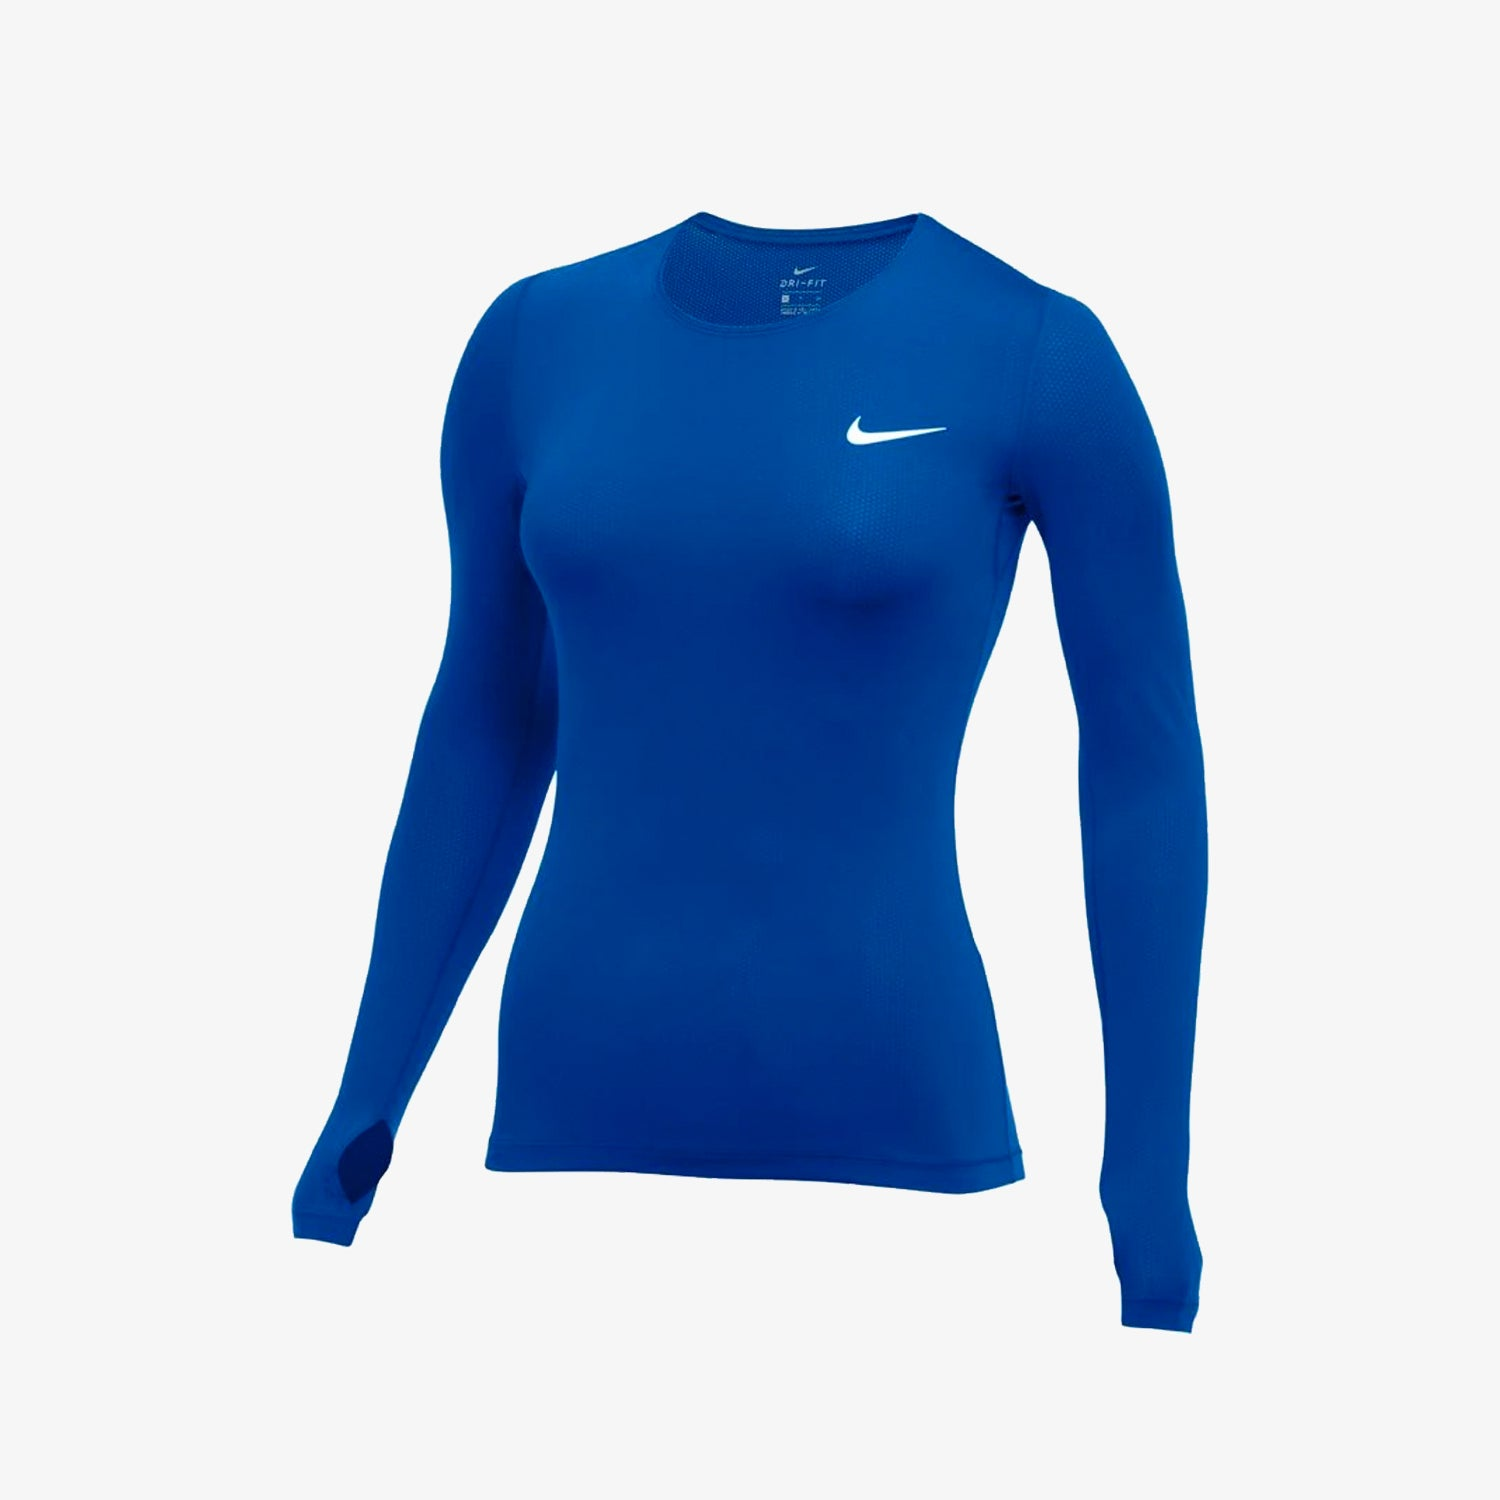 Women's Pro All Over Compression Long-Sleeve Top